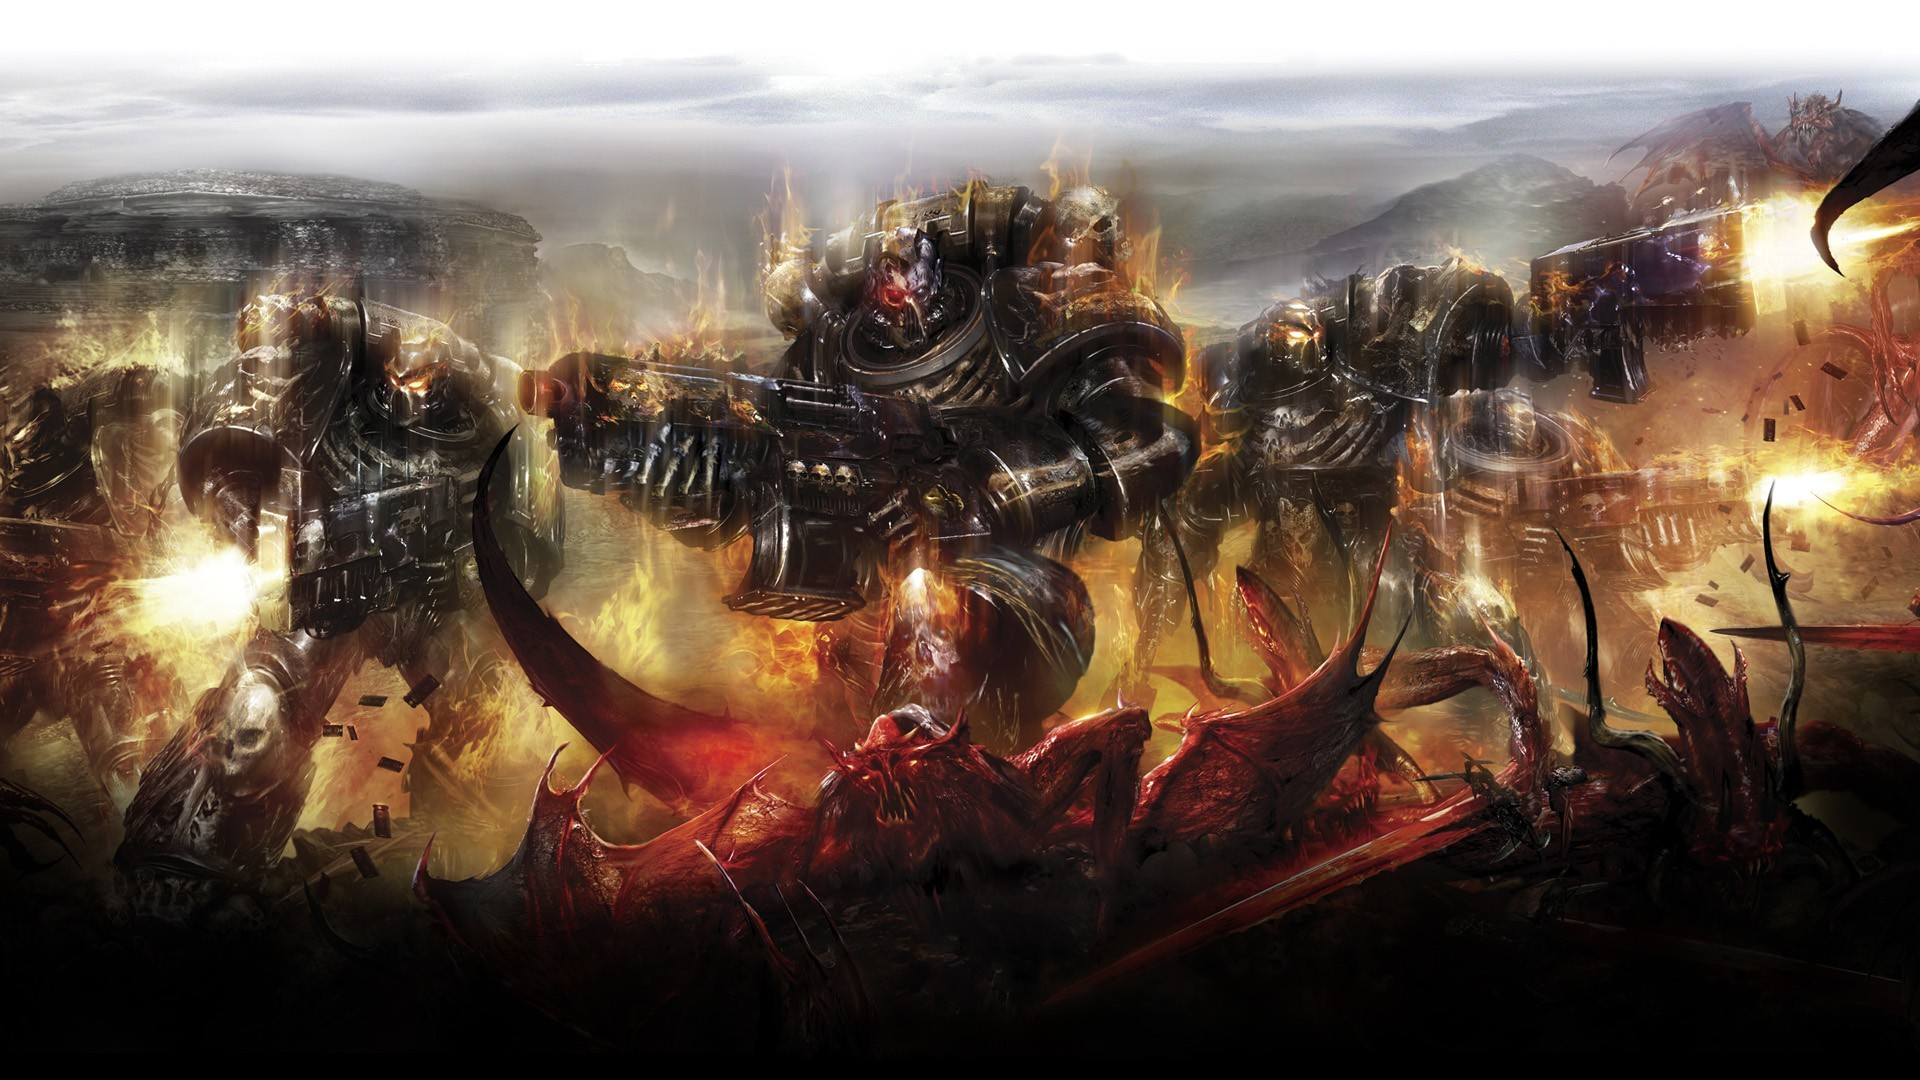 1920x1080 40k-chaos-space-marines-wallpaper.jpg